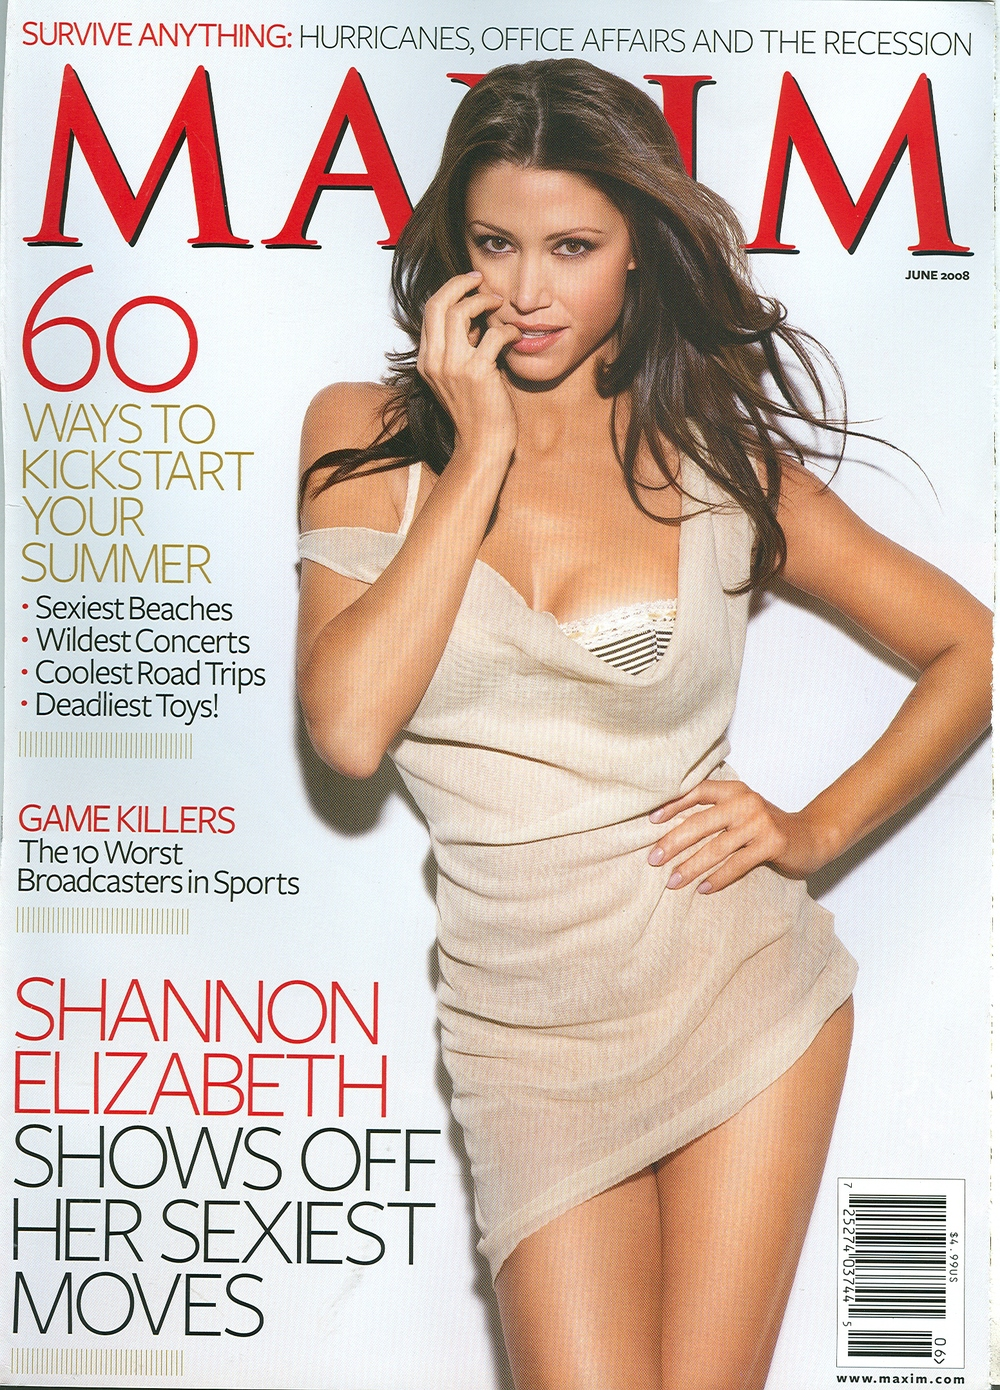 SE_Maxim Magazine_June 2008_1.jpg